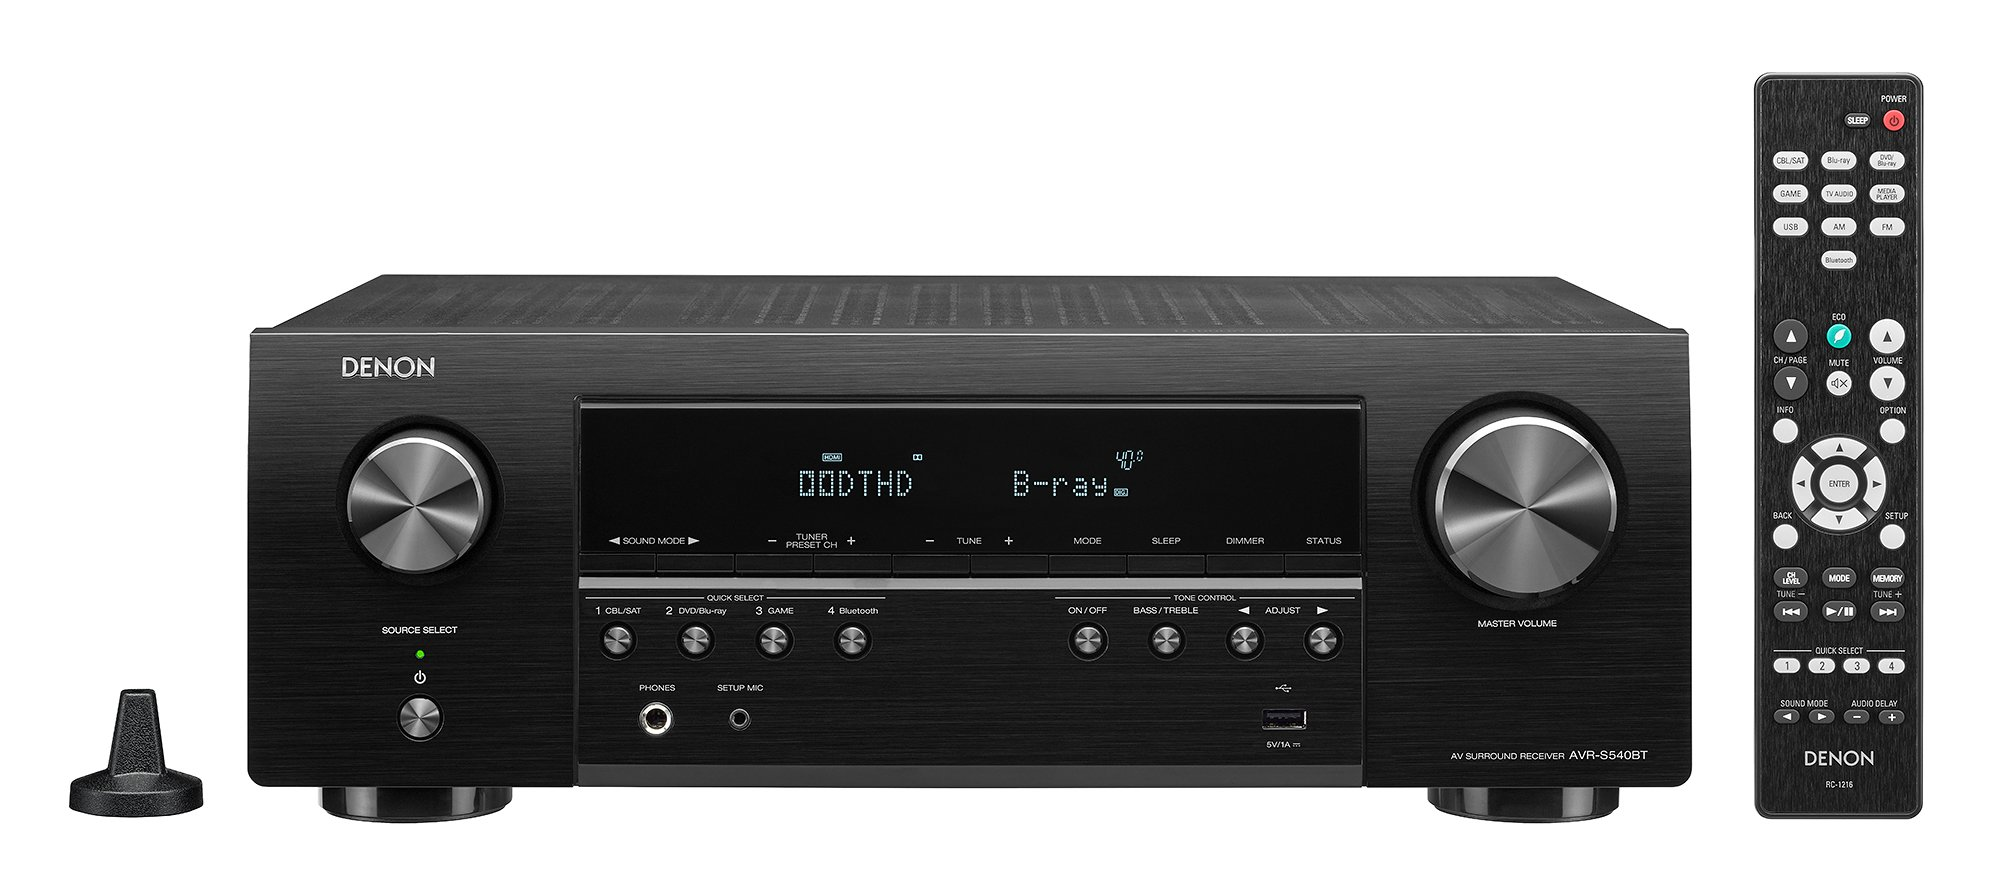 Denon AVR-S540BT Receiver, 5.2 channel, 4K Ultra HD Audio and Video, Home Theater System, built-in Bluetooth and USB port, Compatible with HEOS Link for Wireless Music Streaming by Denon (Image #4)